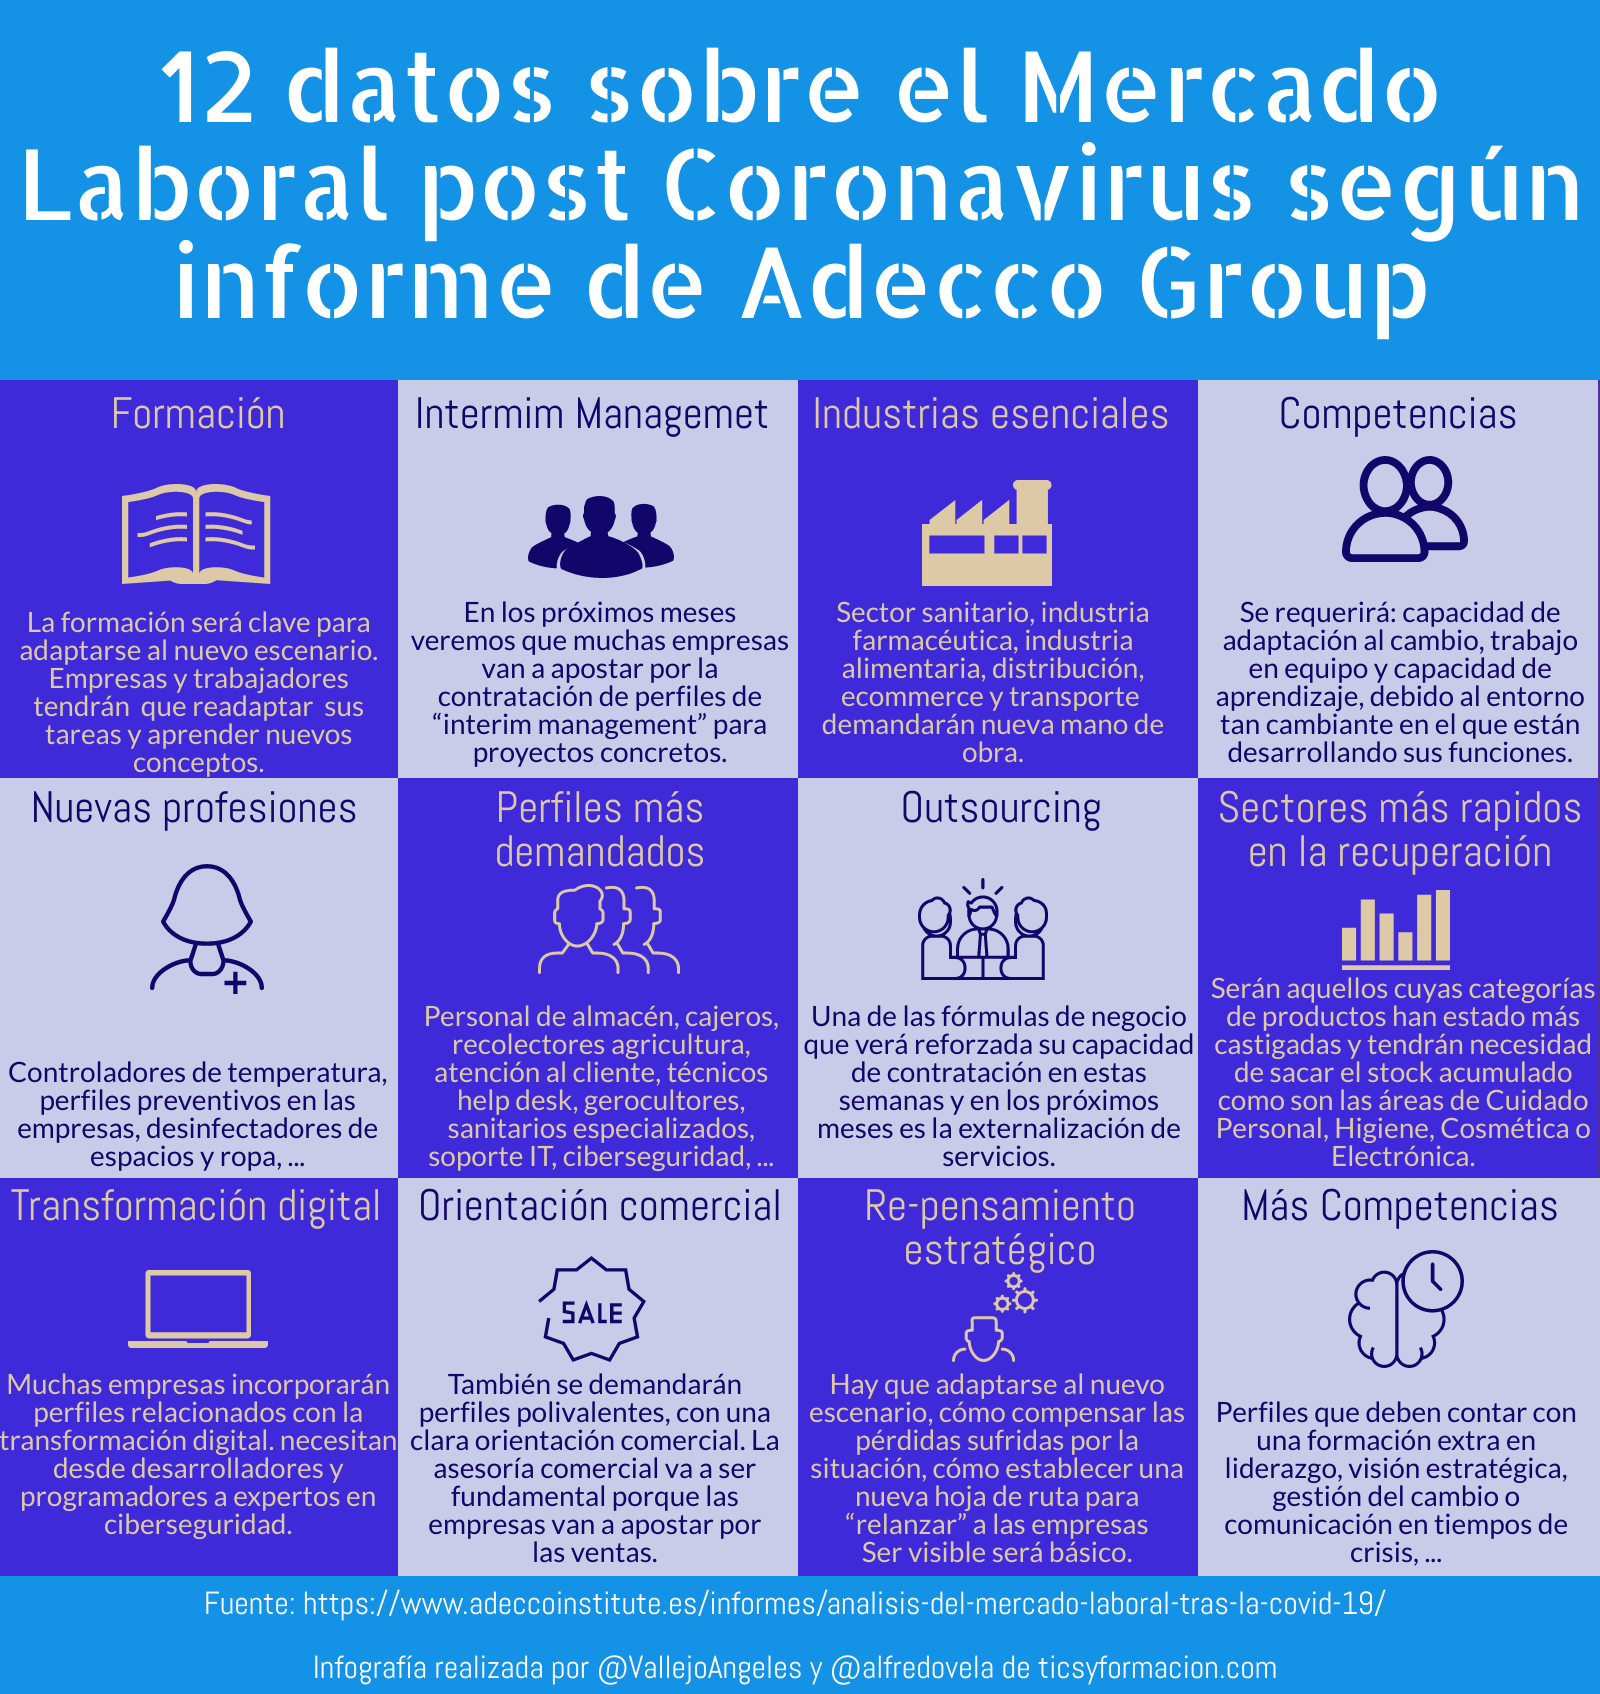 12 datos sobre el Mercado Laboral post Coronavirus según informe de Adecco Group